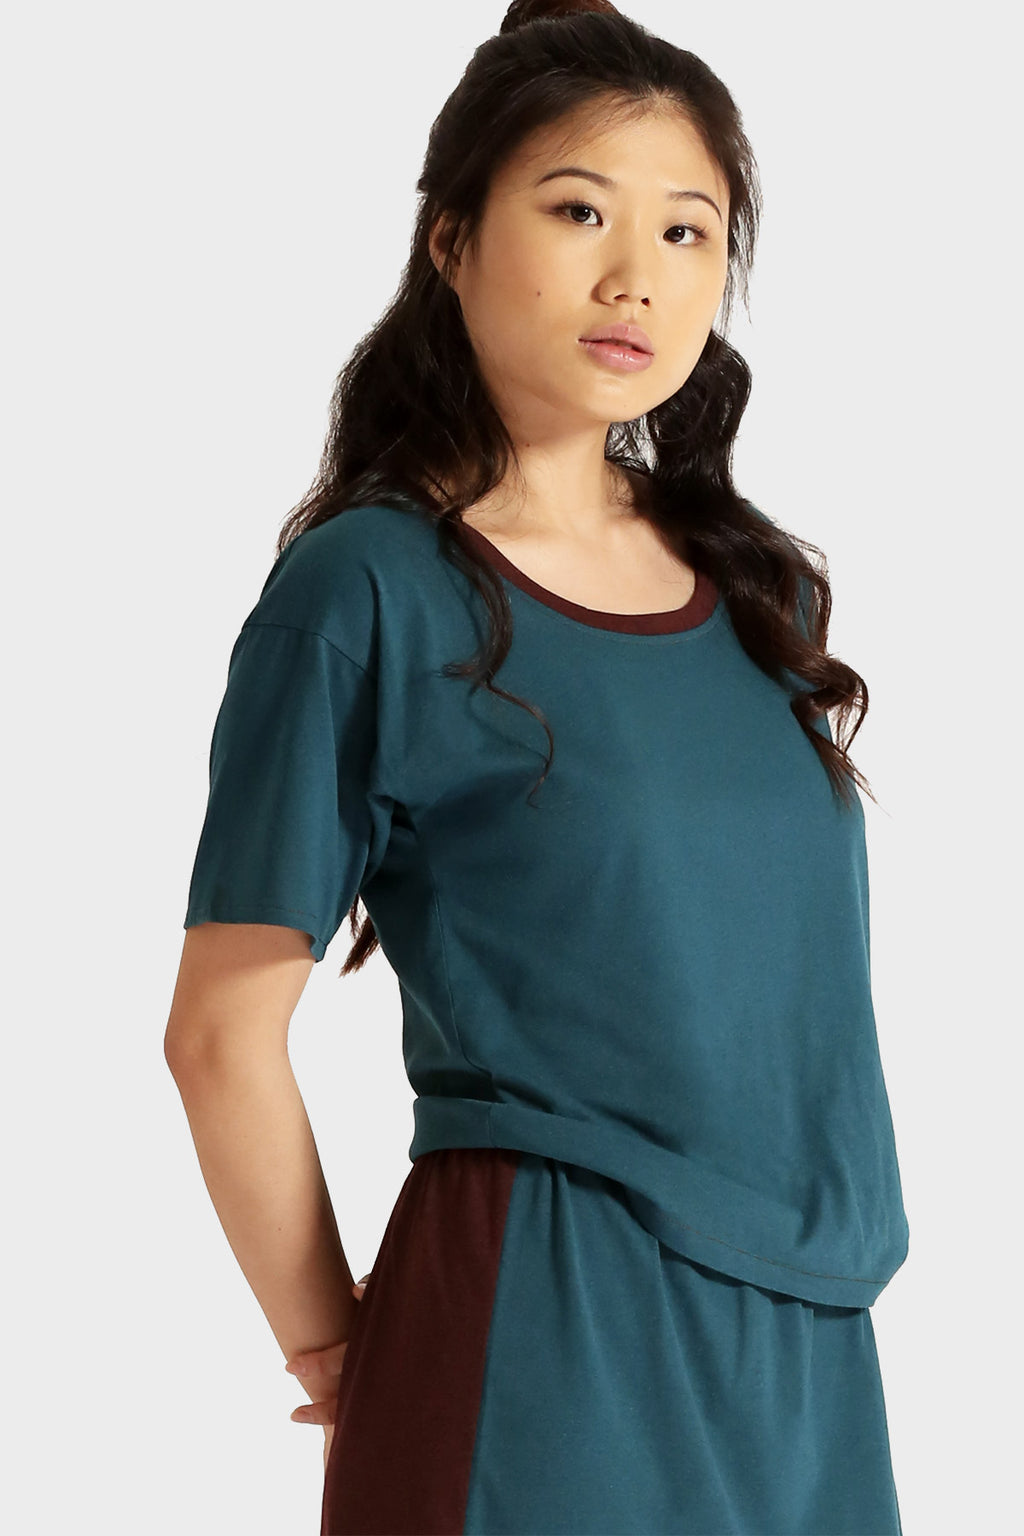 337 BRAND Women's Sustainable Basic Sadie T-Shirt